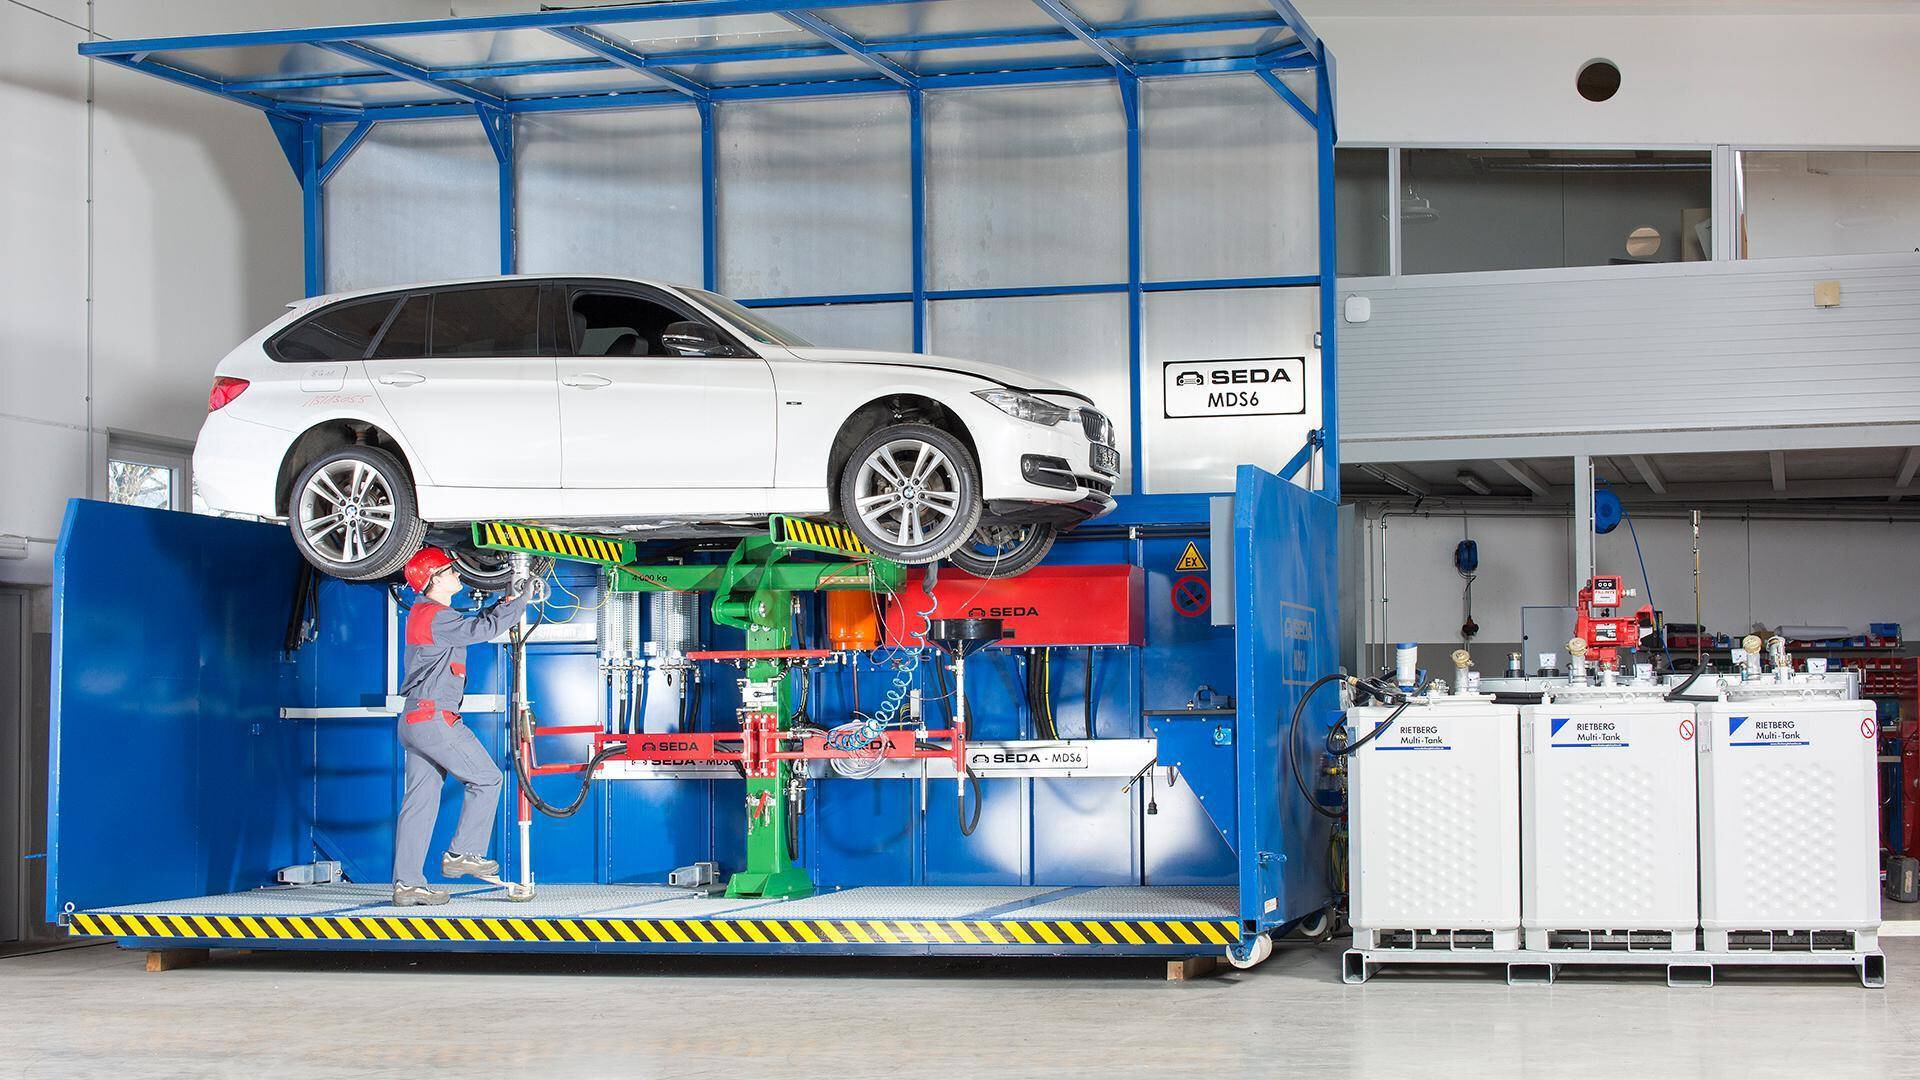 Gallery image 1 - By using a SEDA de-pollution system all operating fluids can be removed from vehicles. Special equipment help to make these processes more efficient.